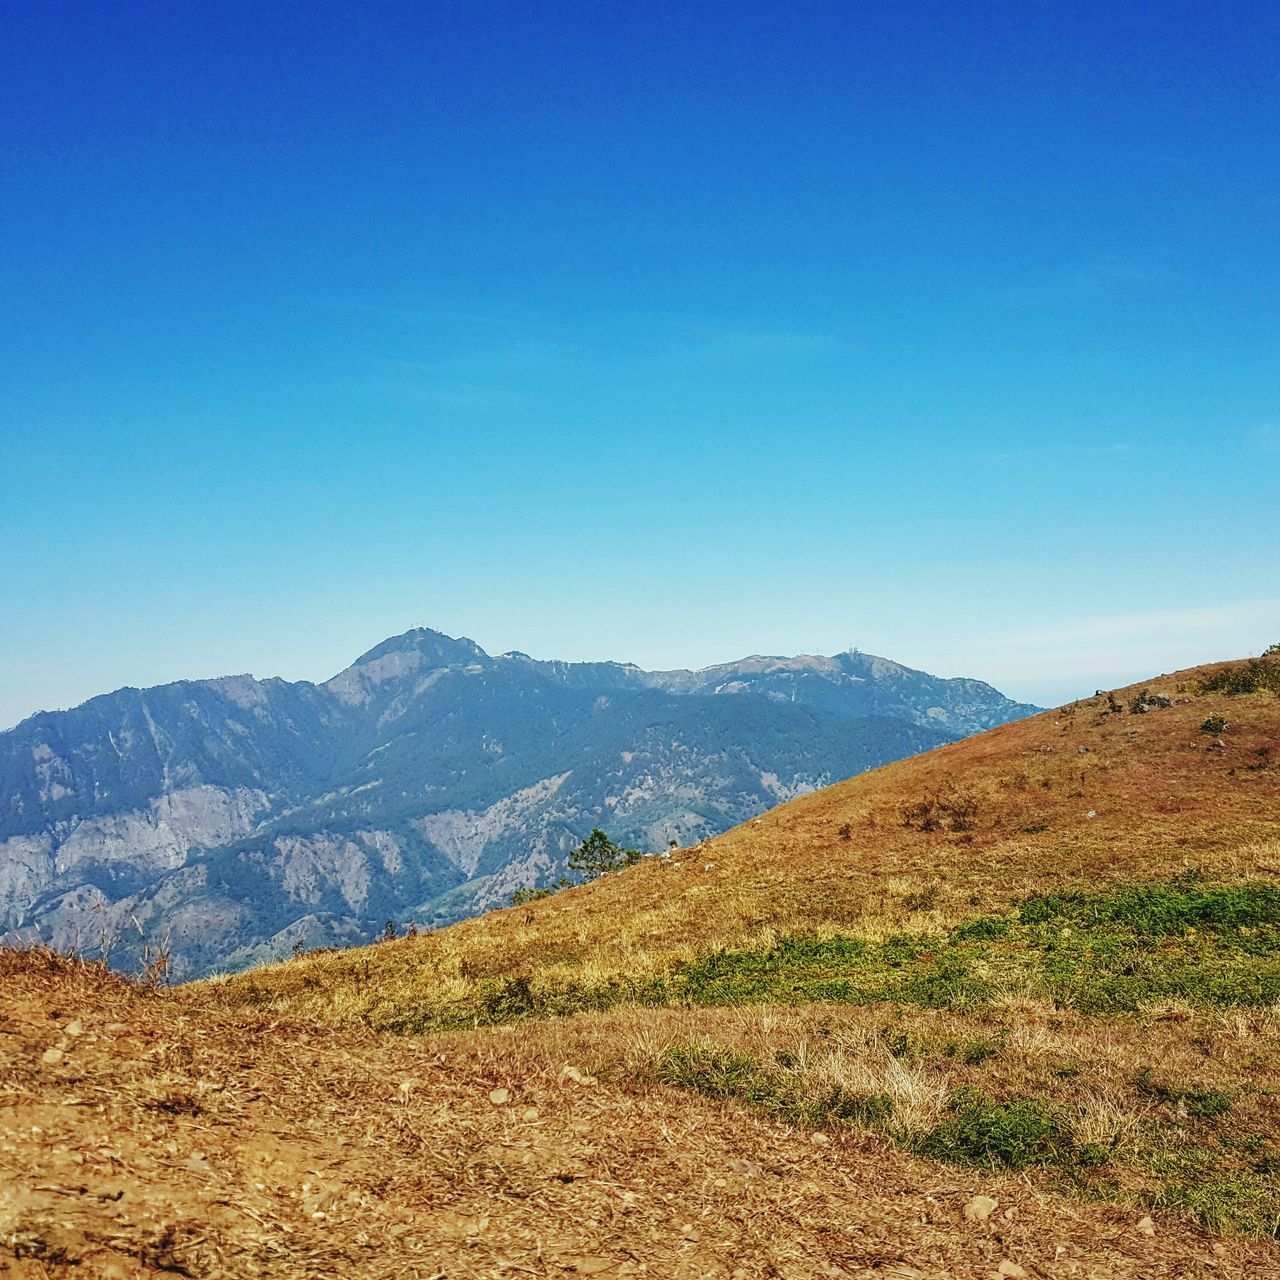 mountain, scenics, nature, tranquil scene, tranquility, beauty in nature, landscape, mountain range, blue, day, no people, outdoors, clear sky, sky